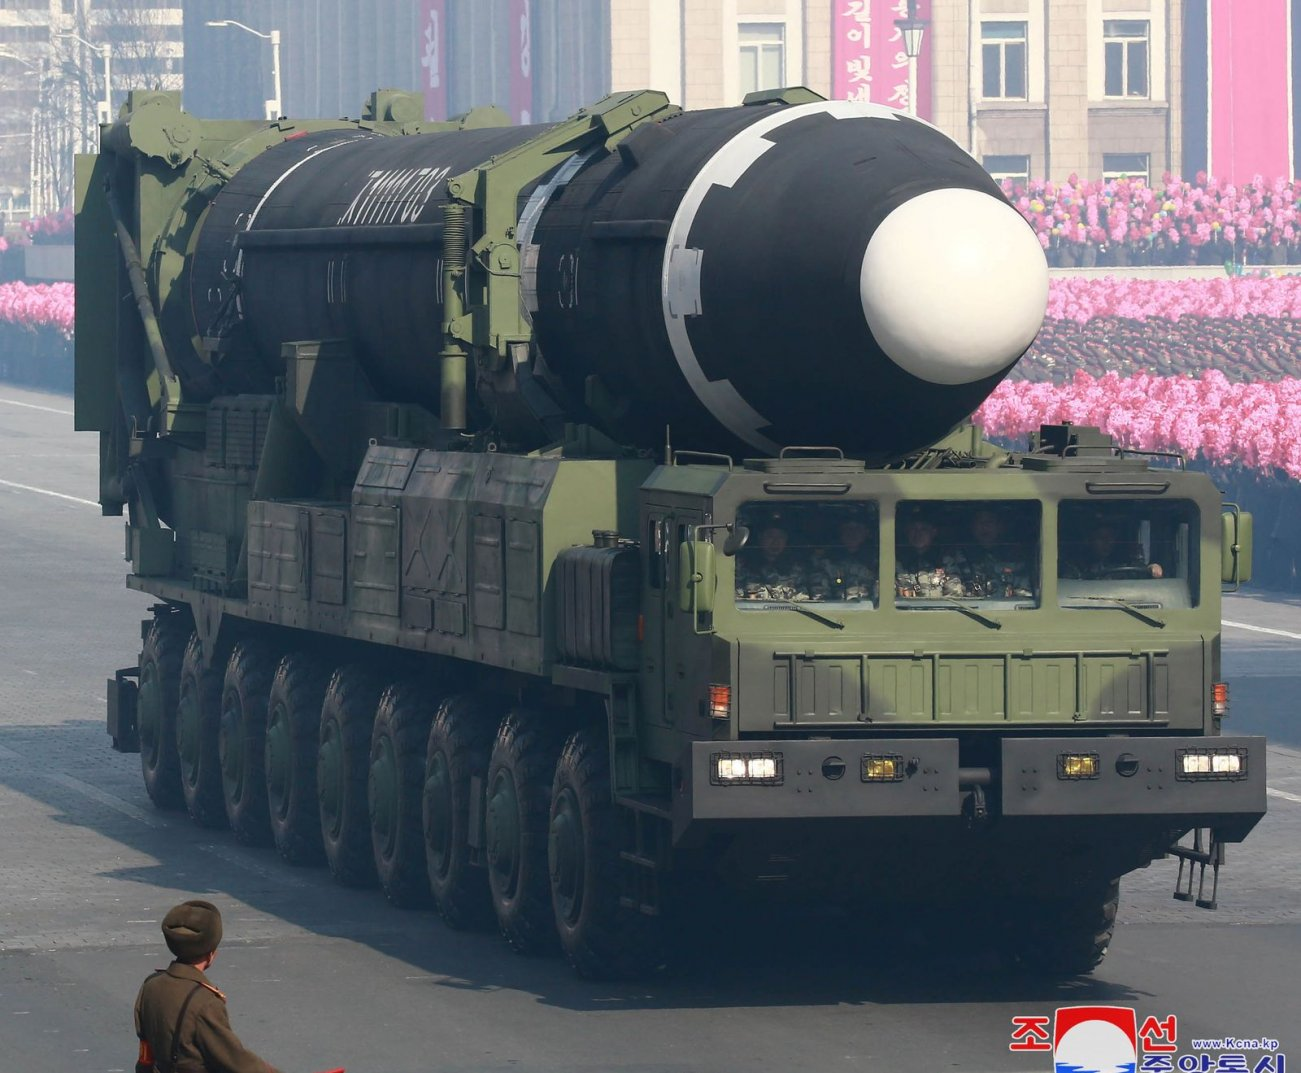 Take Them Out: Could America Really Stop a North Korean Nuclear Attack?